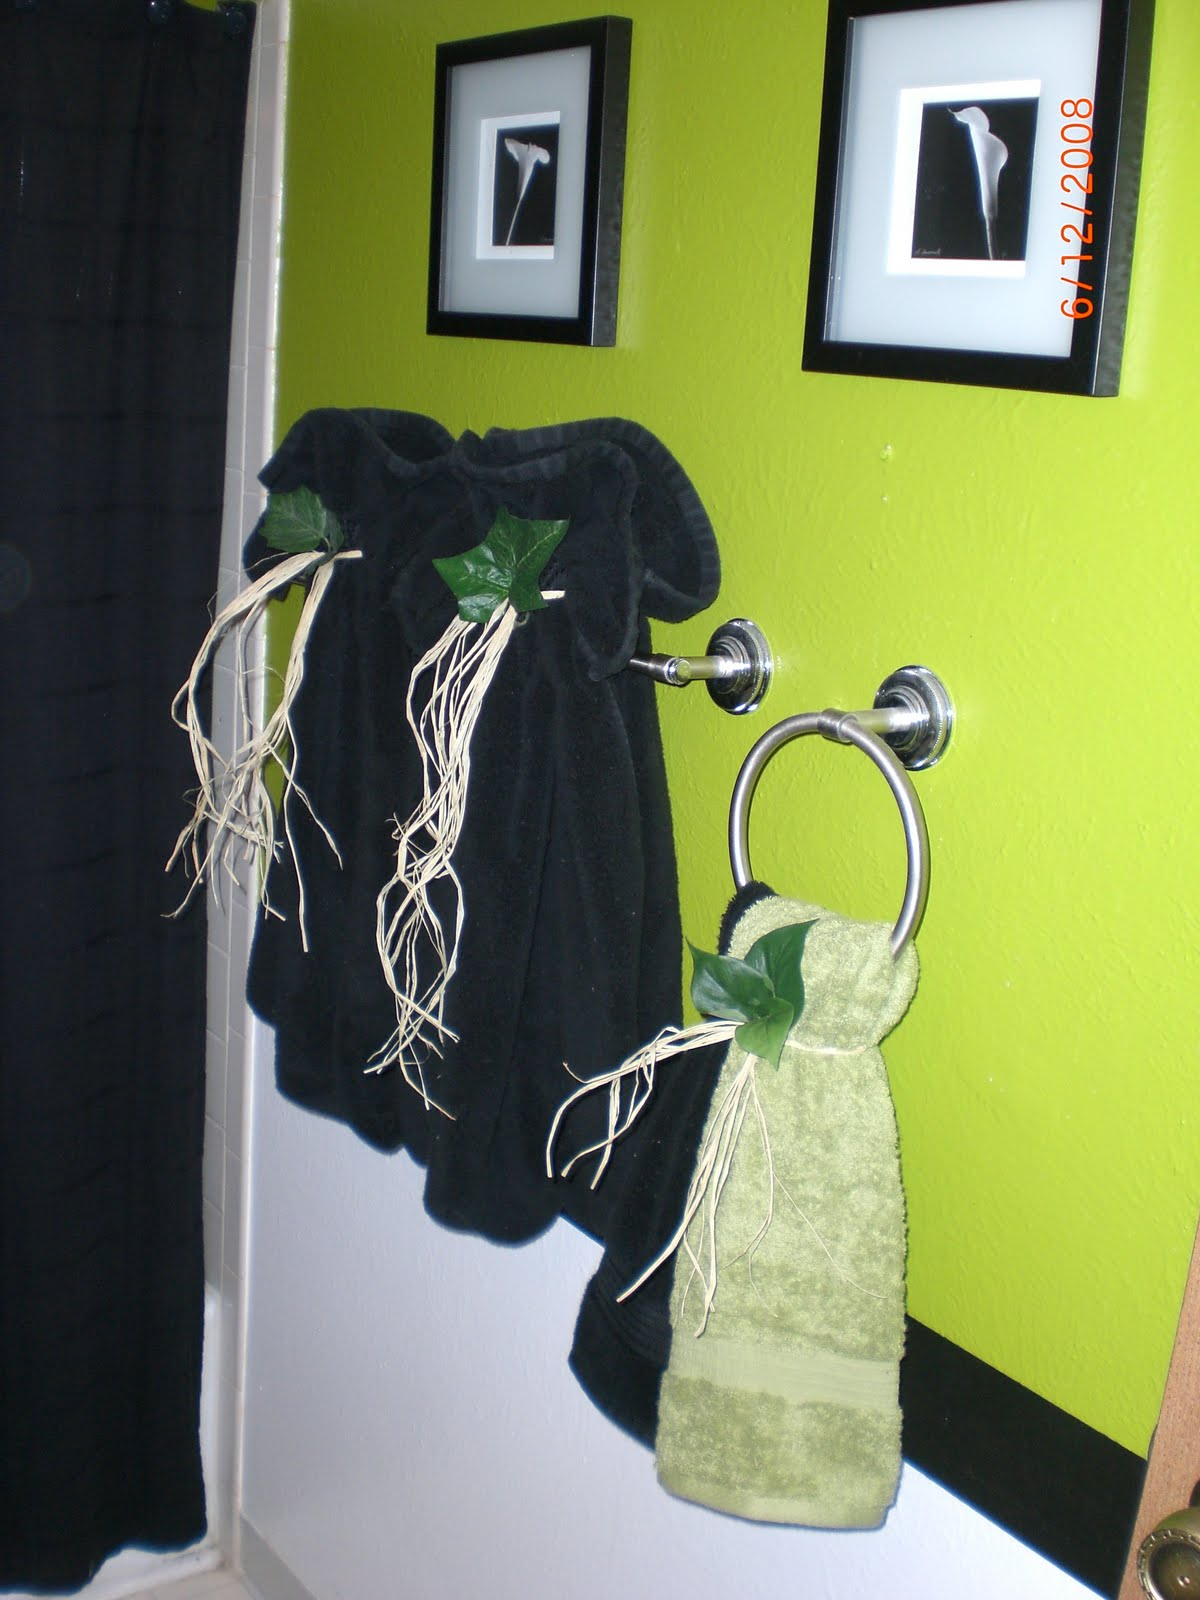 Displaying bathroom towels ideas - Monday November 15 2010